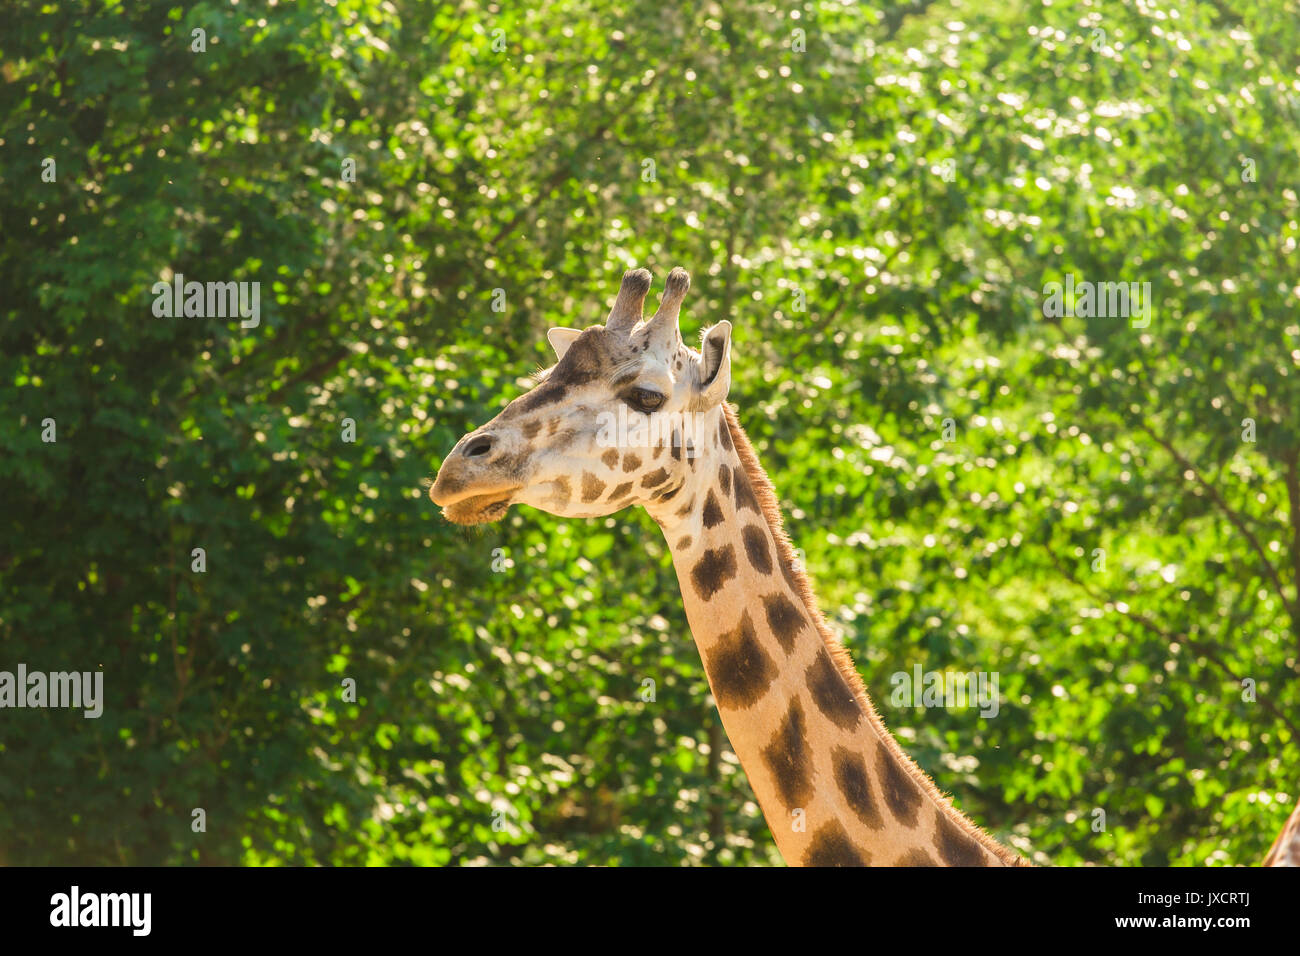 Close-up of a giraffe in front of some green trees. With space for text - Stock Image